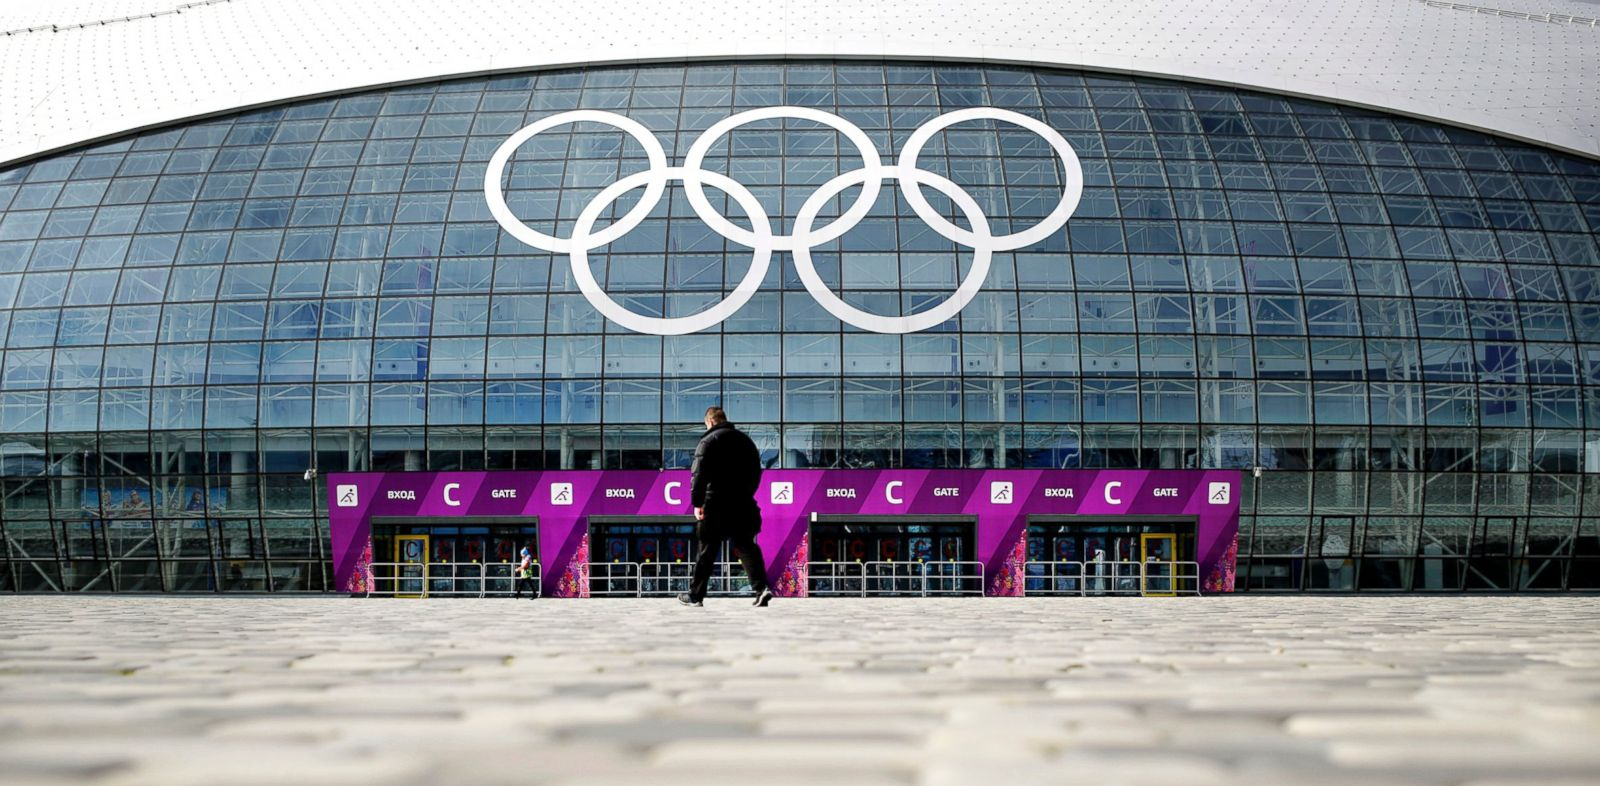 PHOTO: A man walks toward the Bolshoy Ice Dome, which is venue for Ice Hockey matches ahead of the 2014 Winter Olympics, Feb. 5, 2014, in Sochi, Russia.